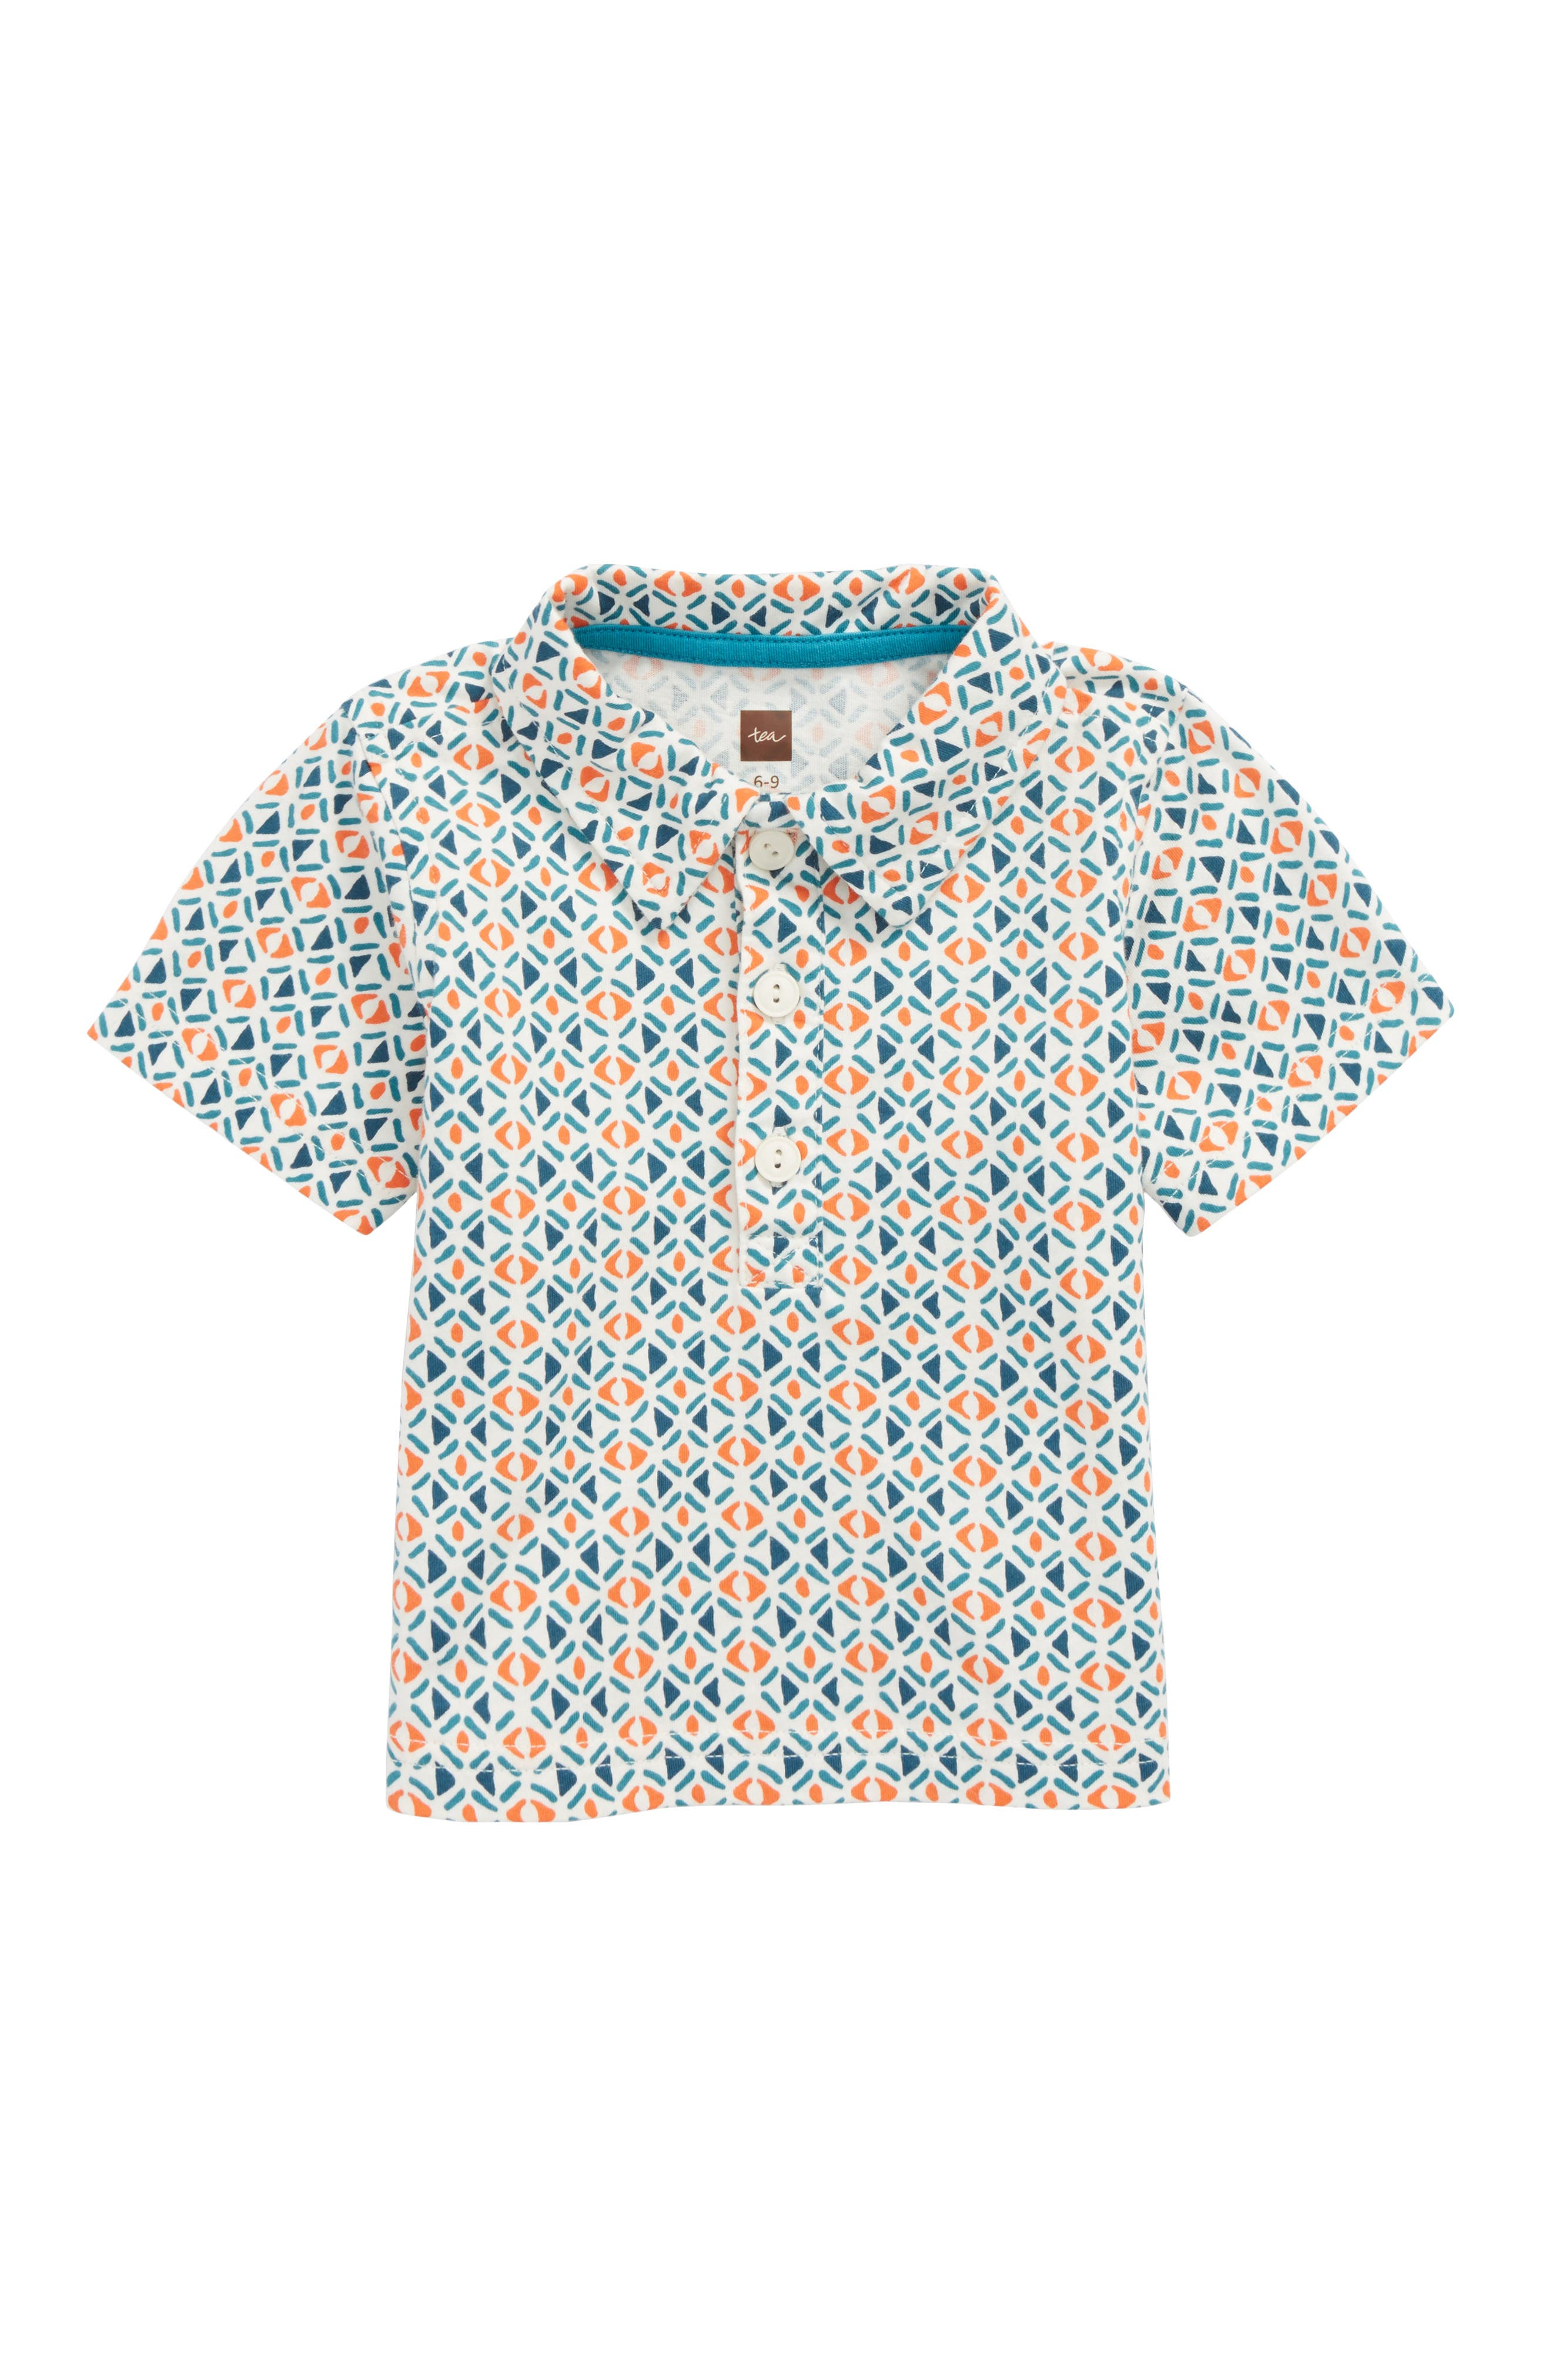 Alternate Image 1 Selected - Tea Collection Geometric Print Polo (Baby Boys)